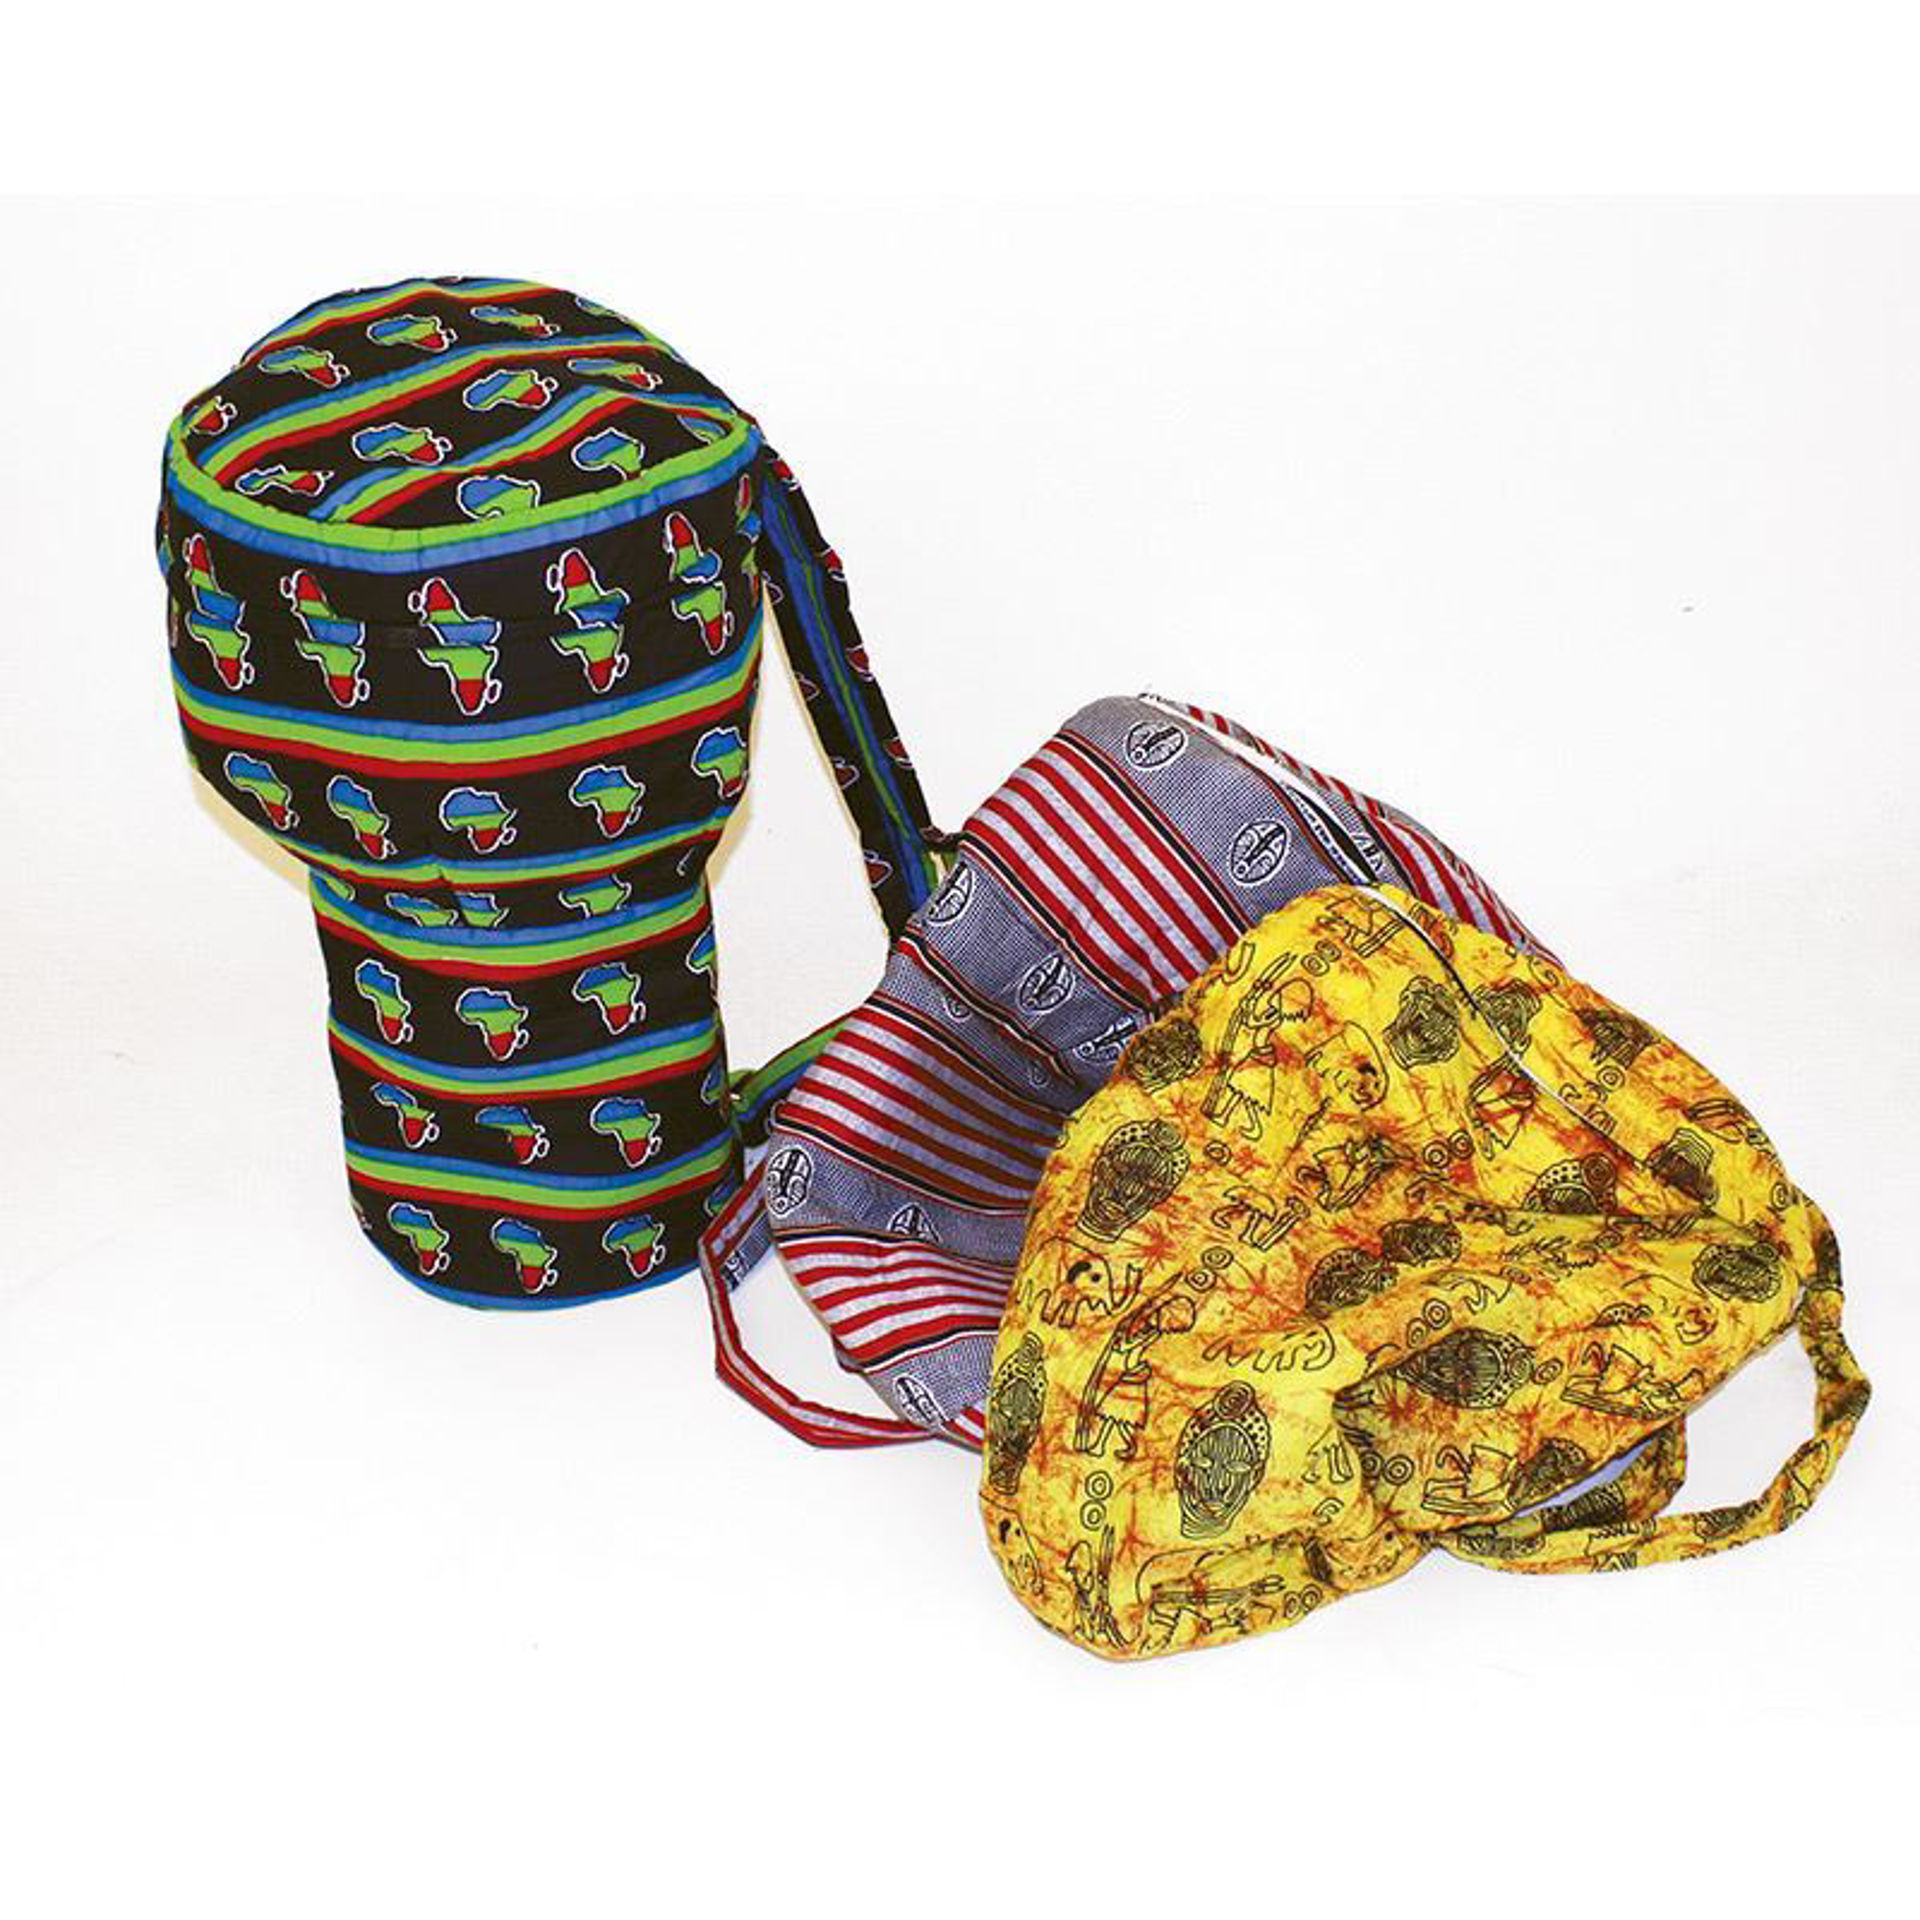 Picture of Djembe Drum Bags - African Print Fabric